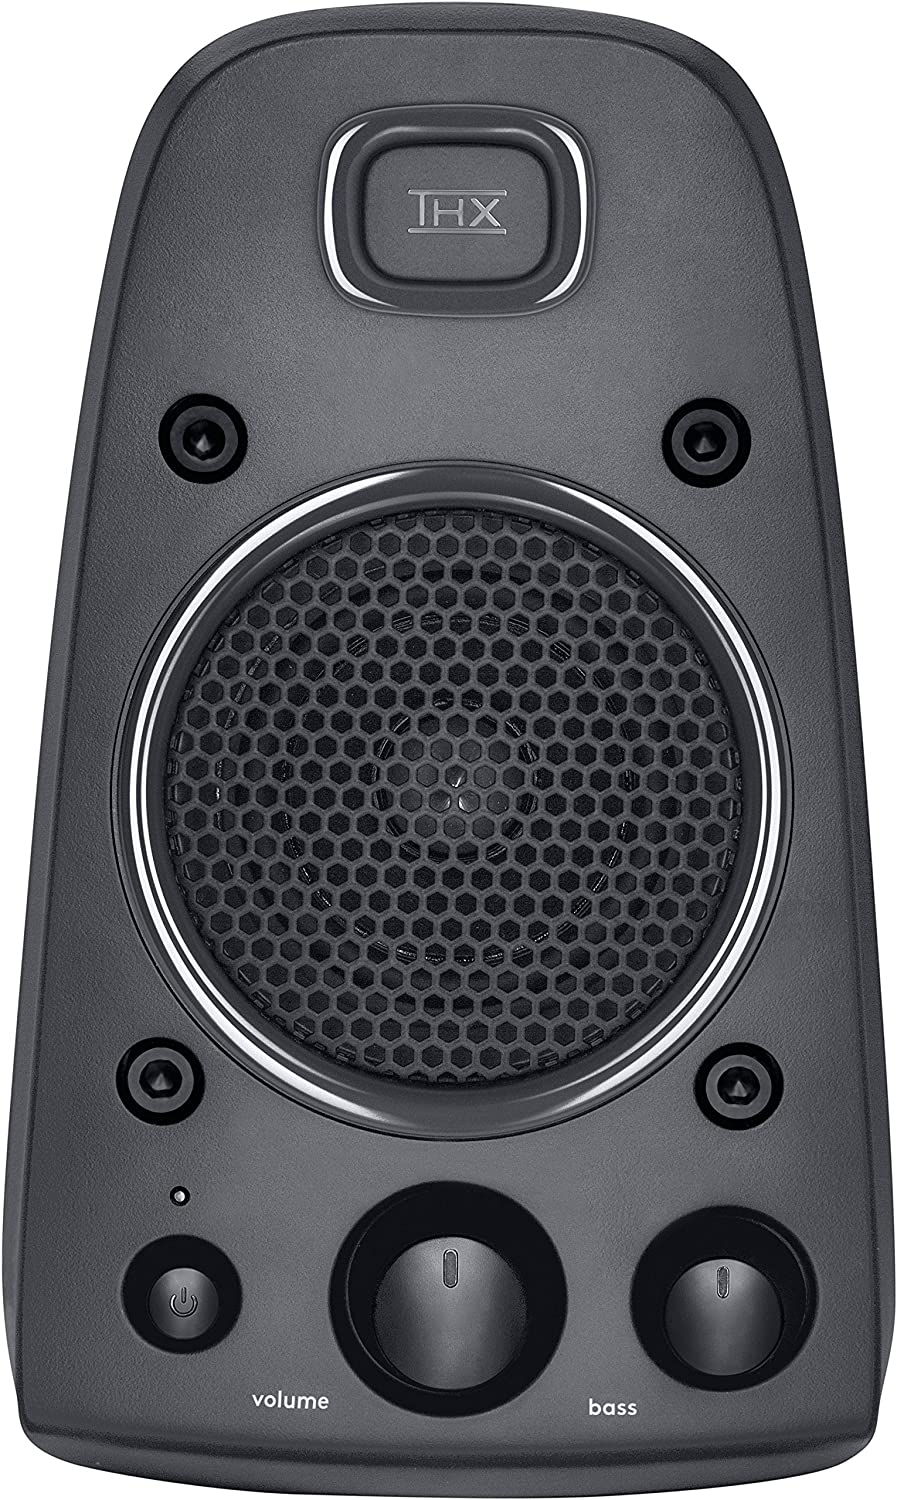 Game Consoles and Computers Z625 Powerful THX Sound 2.1 Speaker System for TVs